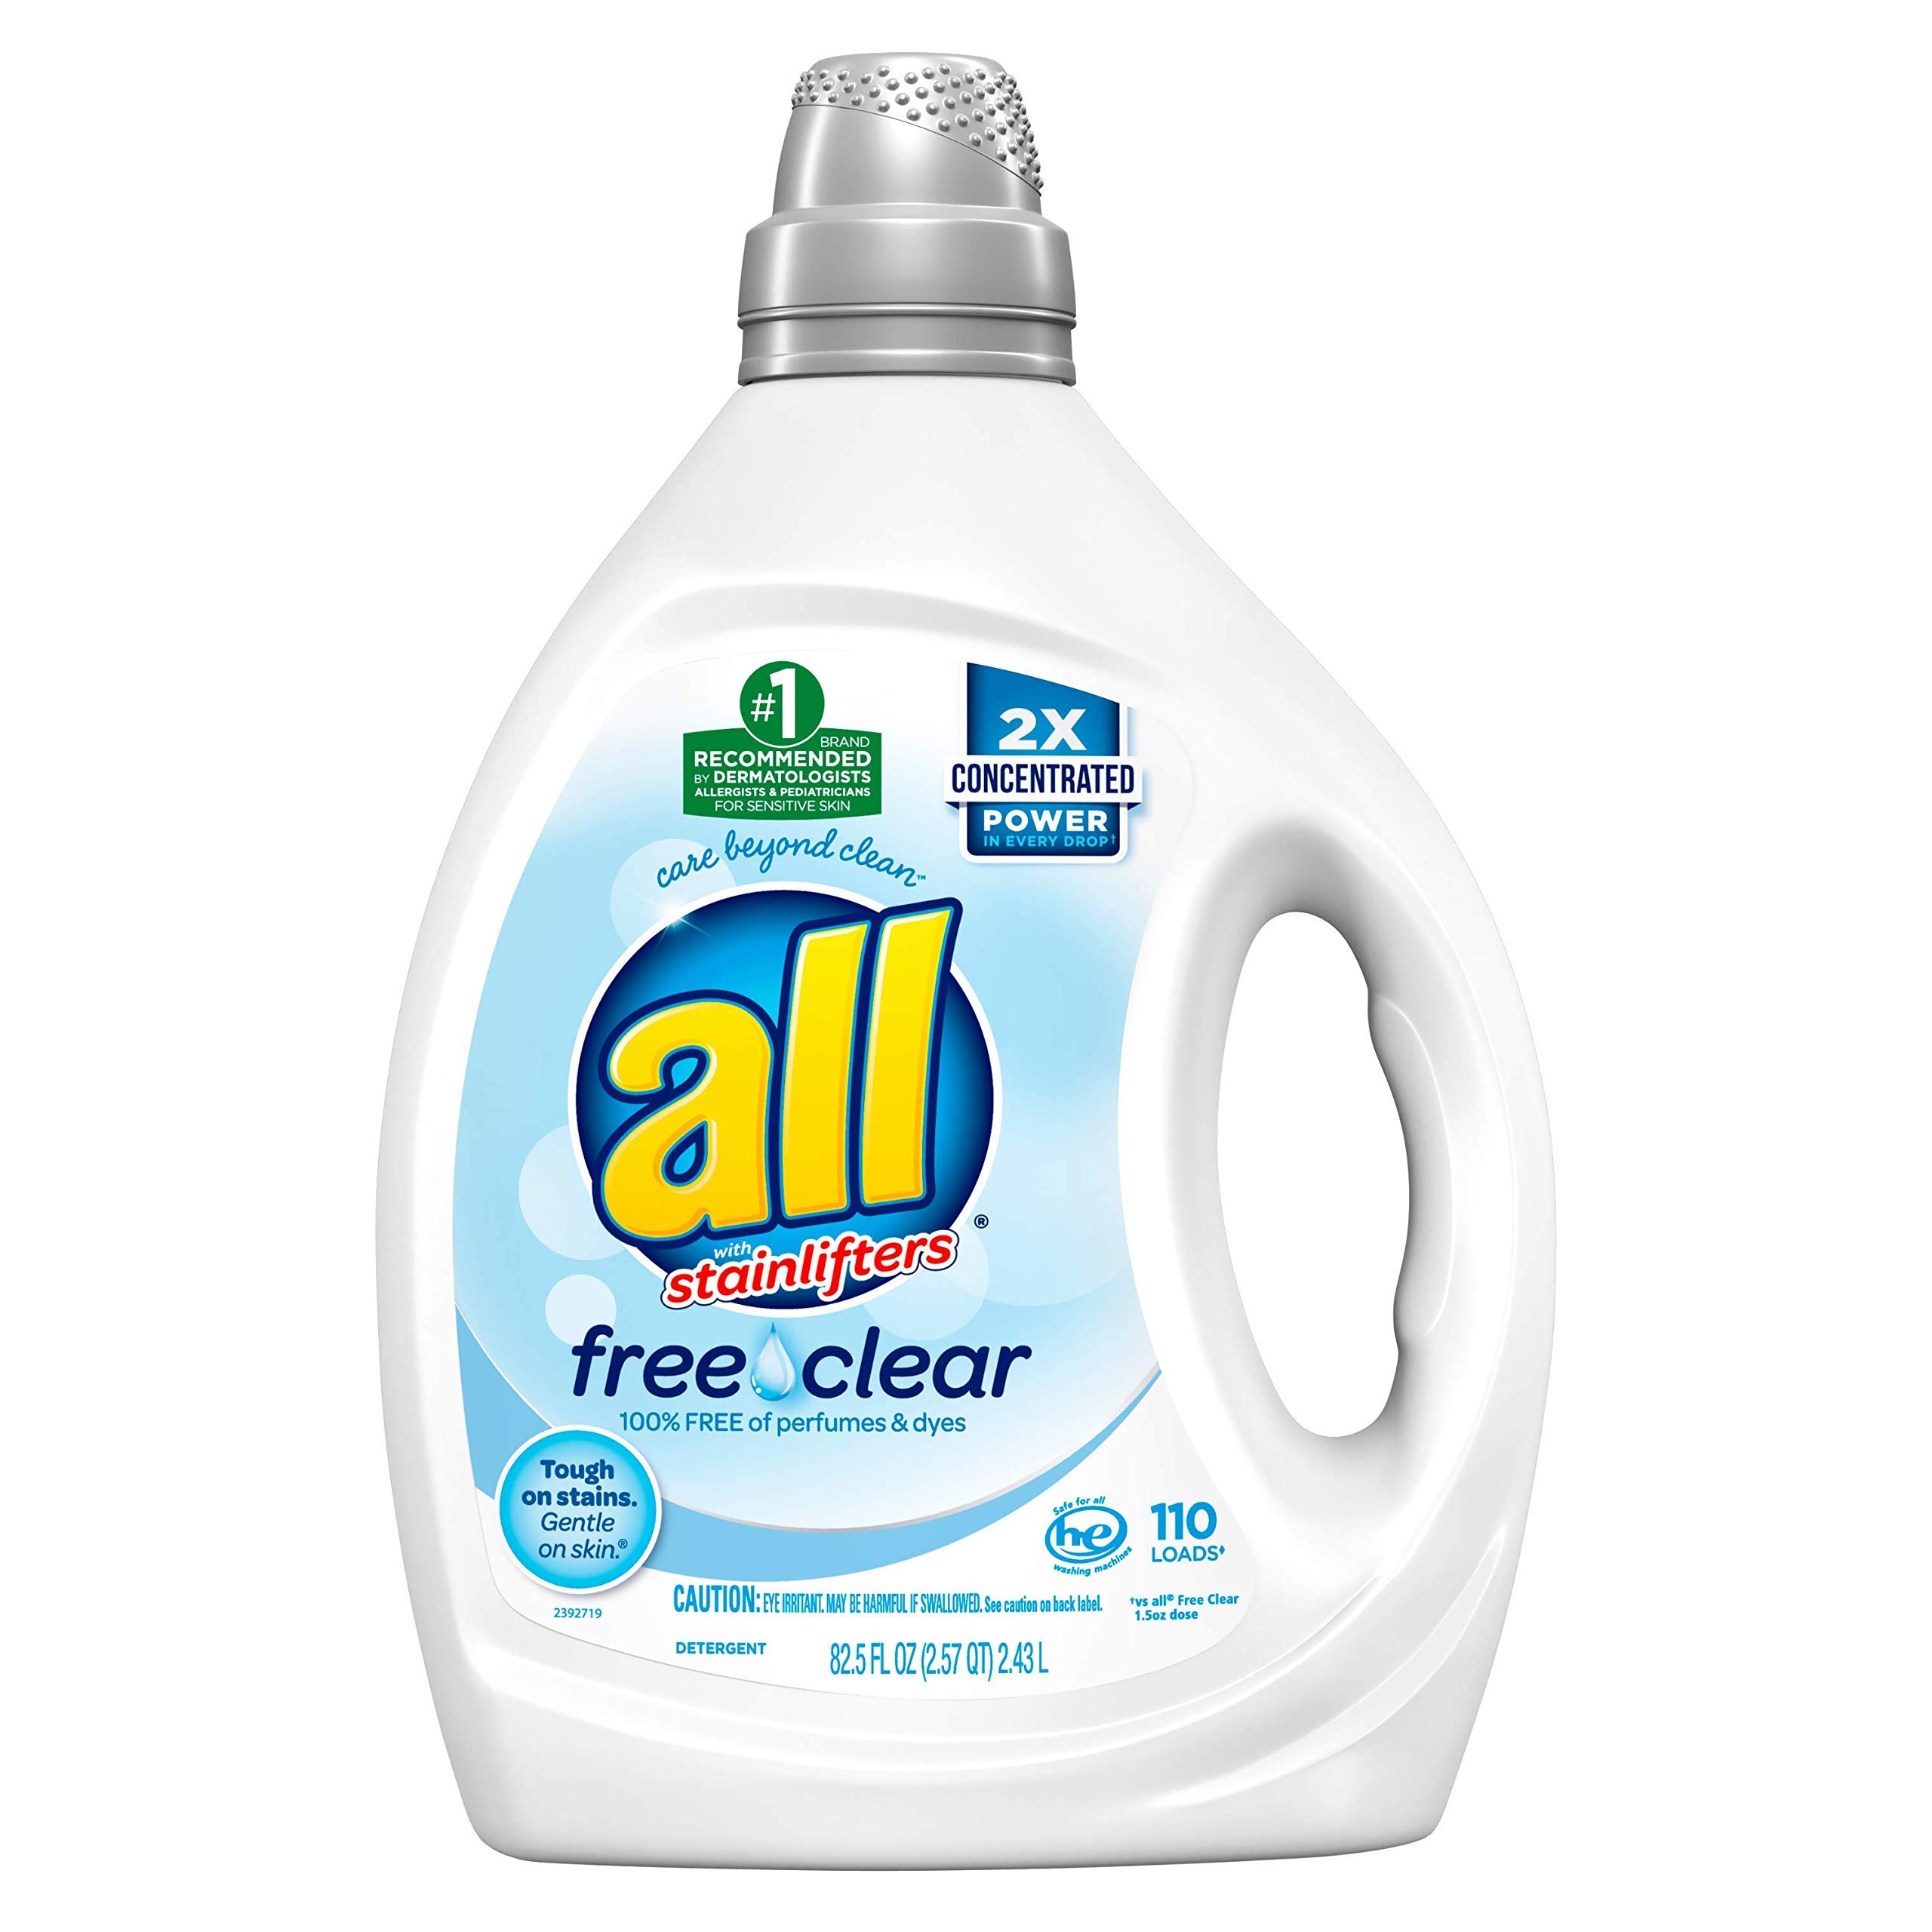 All Liquid Laundry Detergent, Free Clear for Sensitive Skin, 2X Concentrated, 110 Loads by All